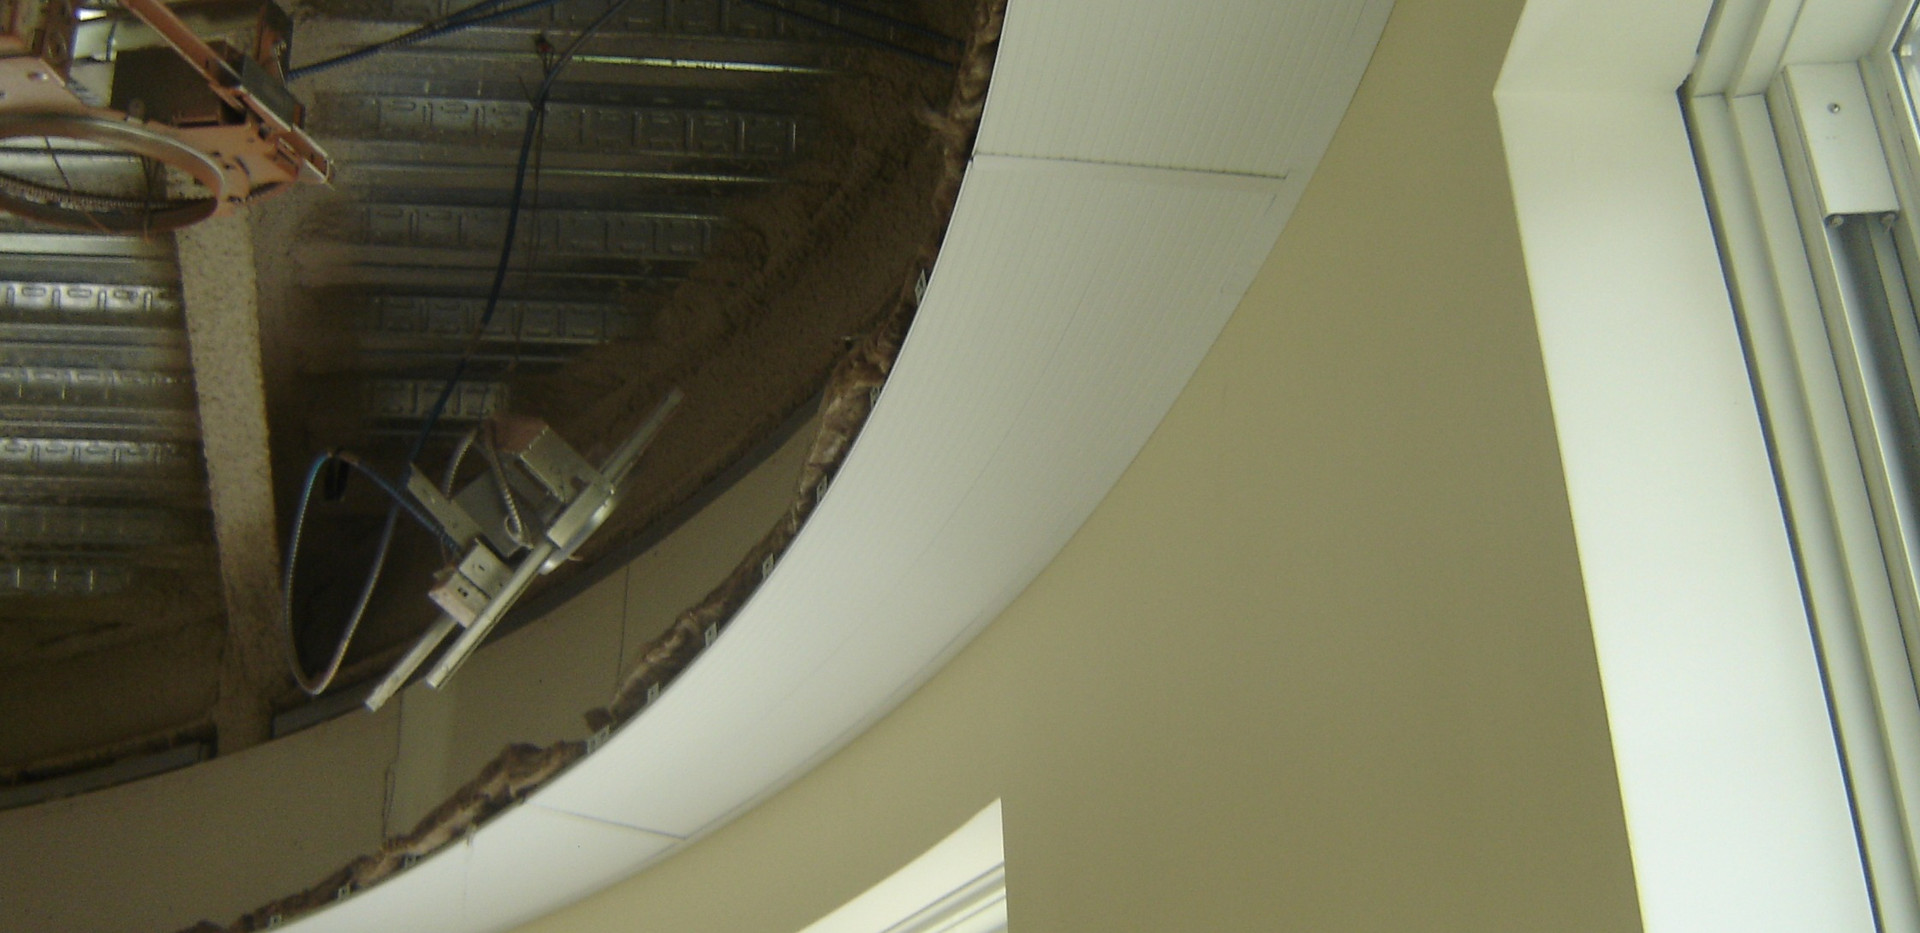 AeroTech, Curved Hydronic Radiant Ceiling Panel during Install